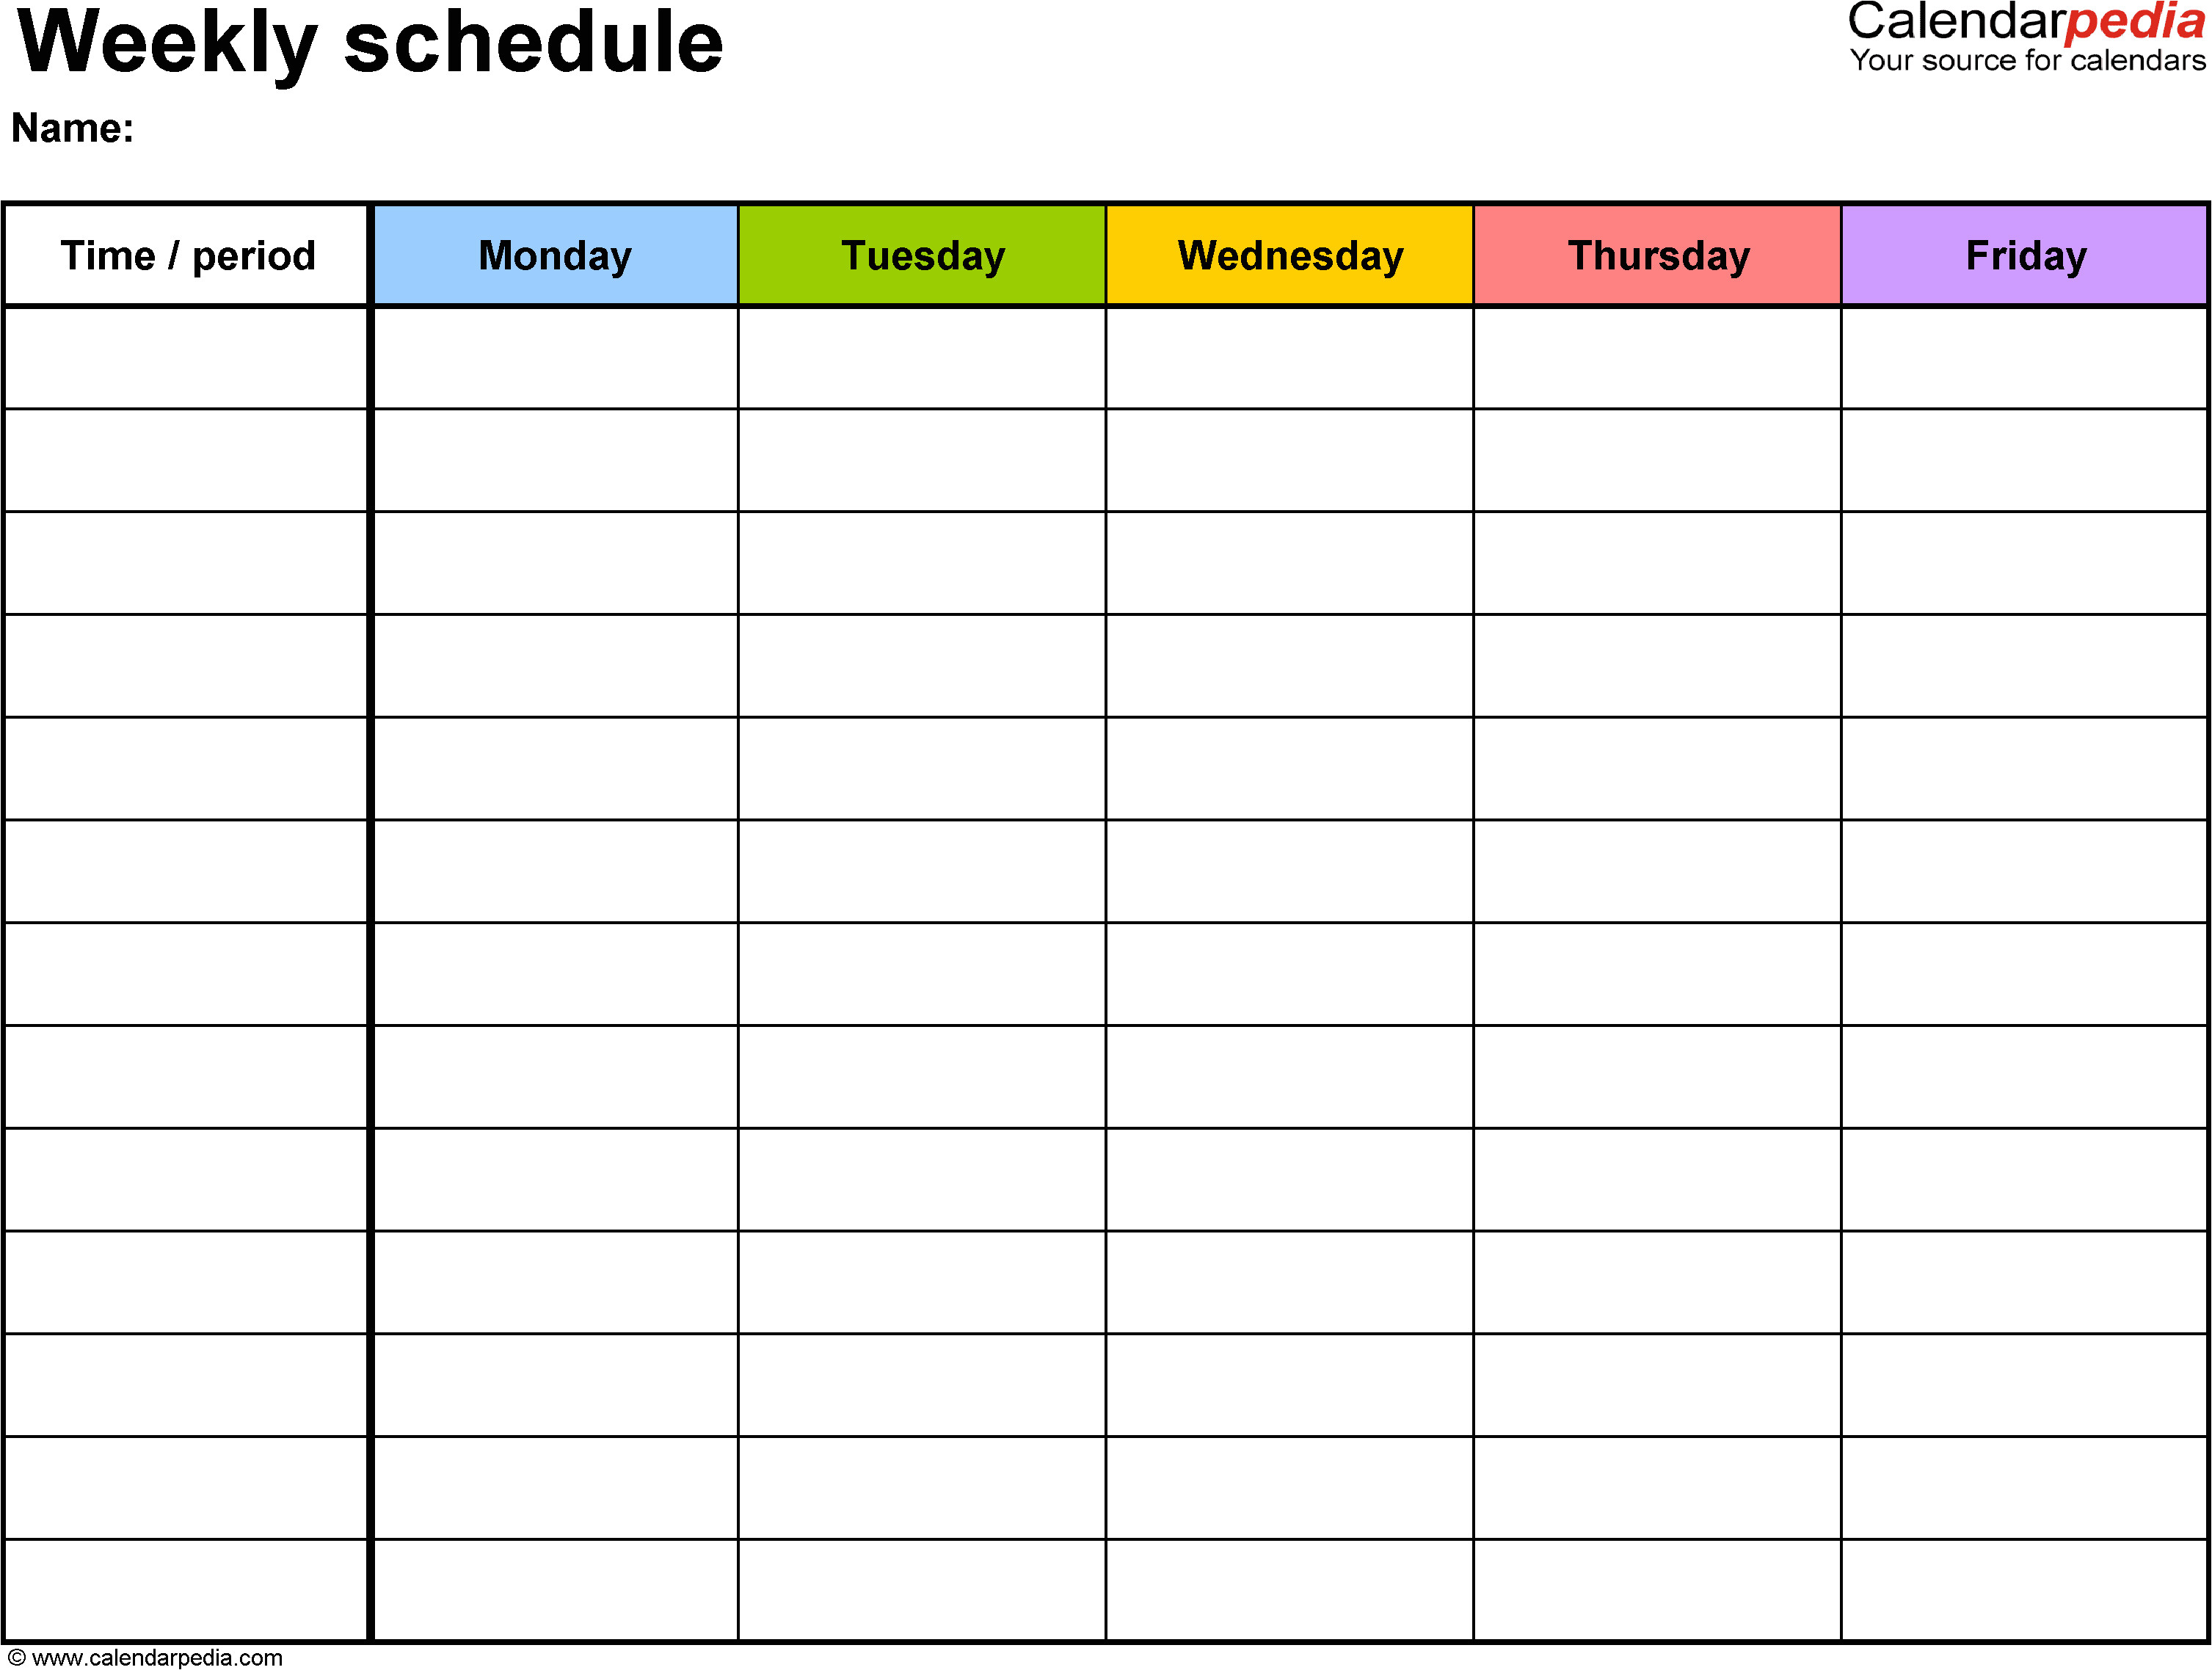 Term Calendar Template Weekly Schedule Template for Word Version 1 Landscape 1